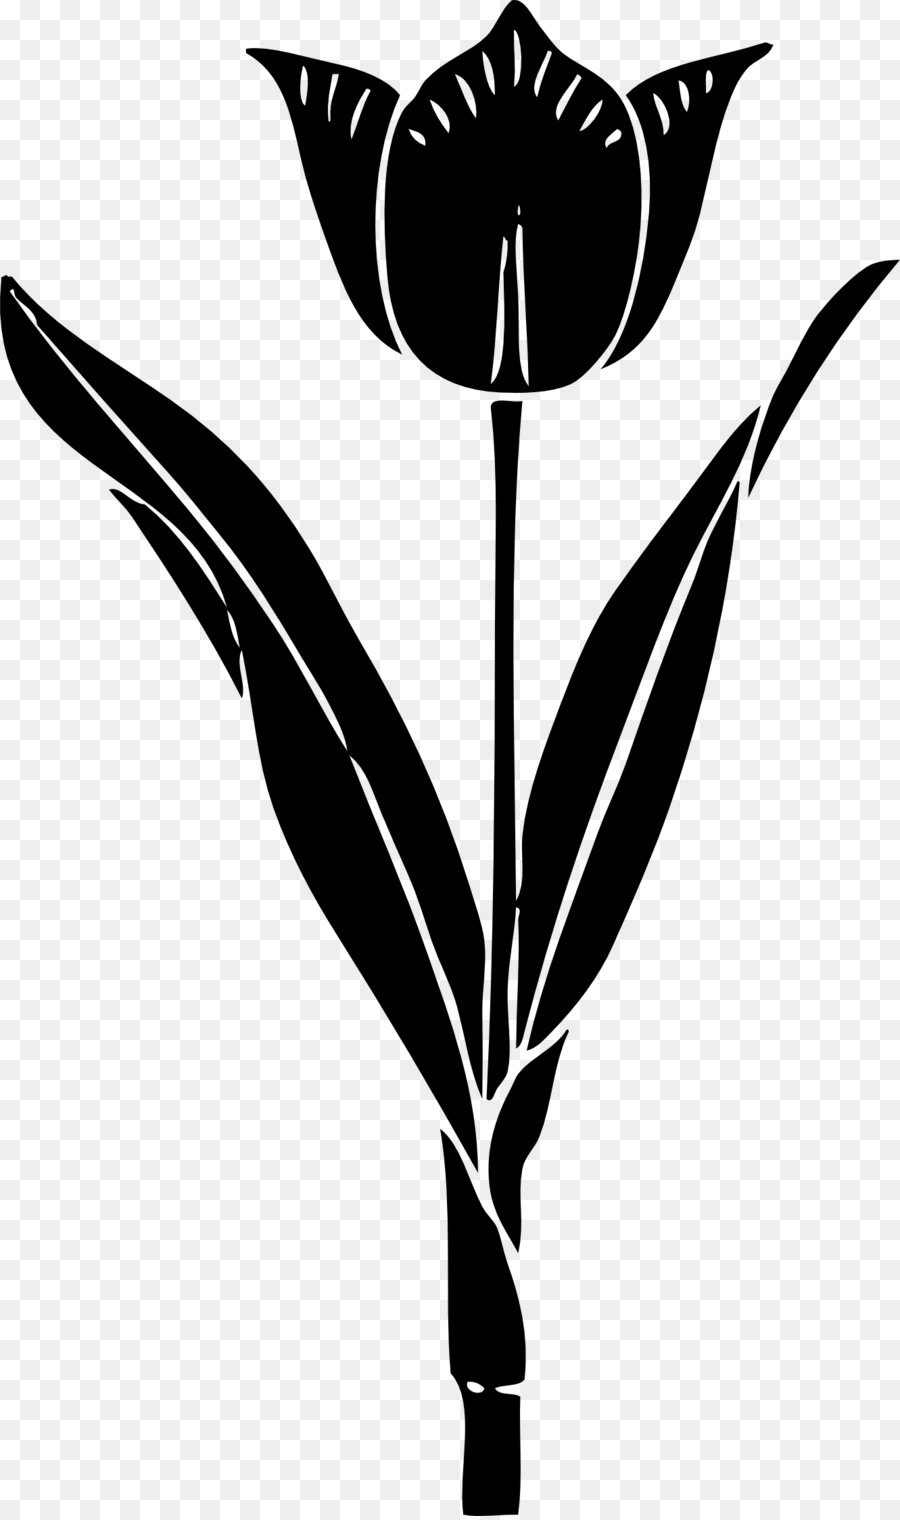 Tulip stem clipart black and wite image transparent library Black And White Flower clipart - Tulip, Silhouette, Flower ... image transparent library